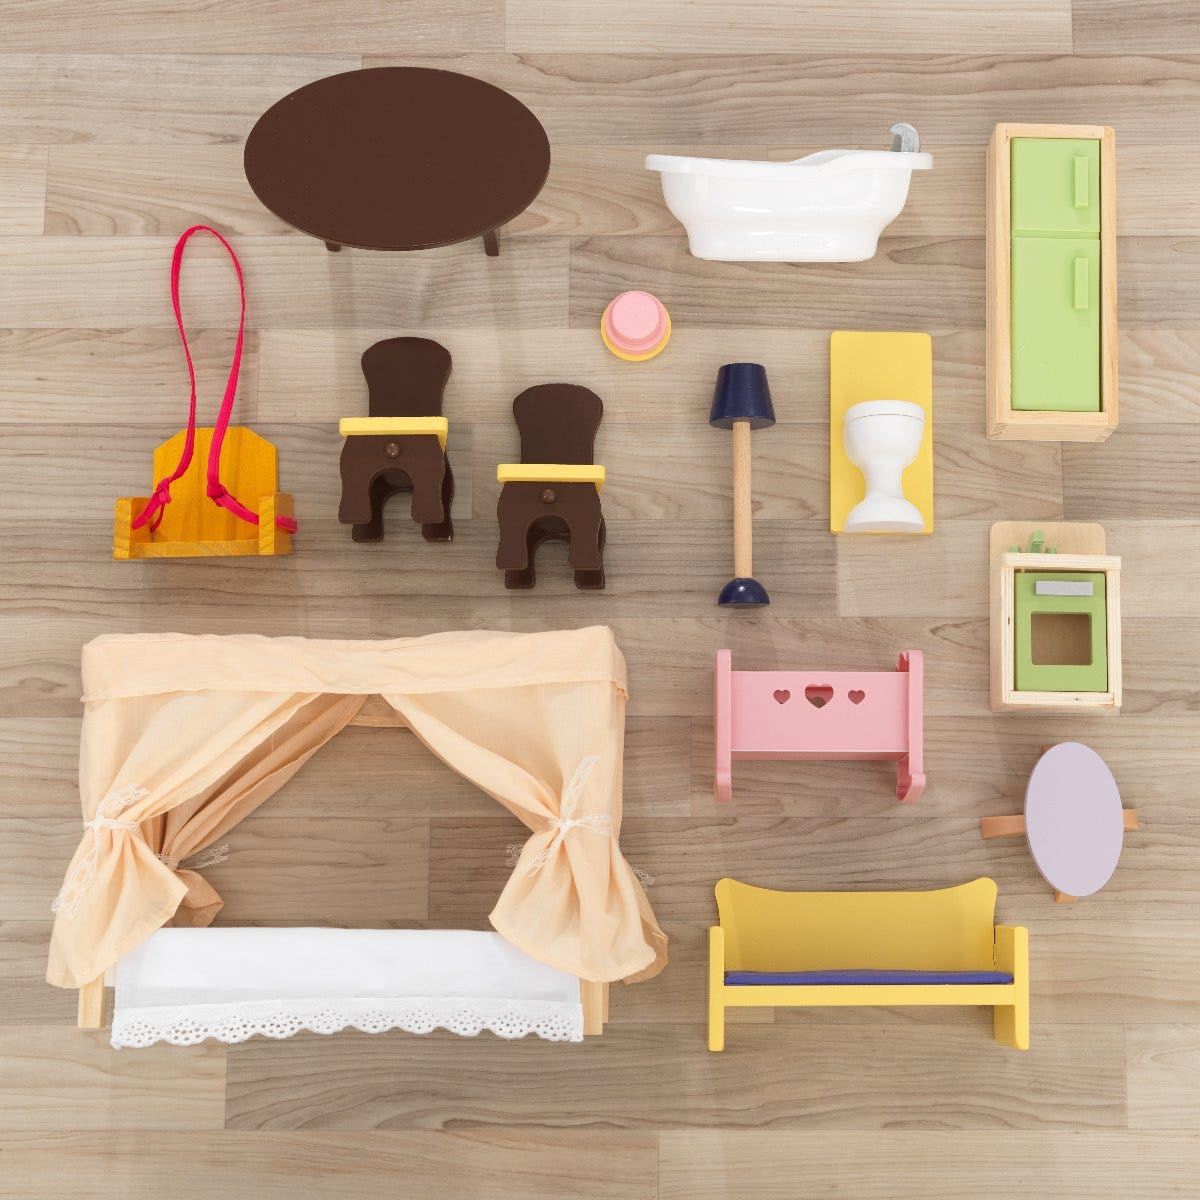 Let your child's creativity flourish with a kit of 14 furniture pieces and home accessories! Your child will explore the creative possibilities of playing with 12-inch dolls in multiple rooms and a working porch swing